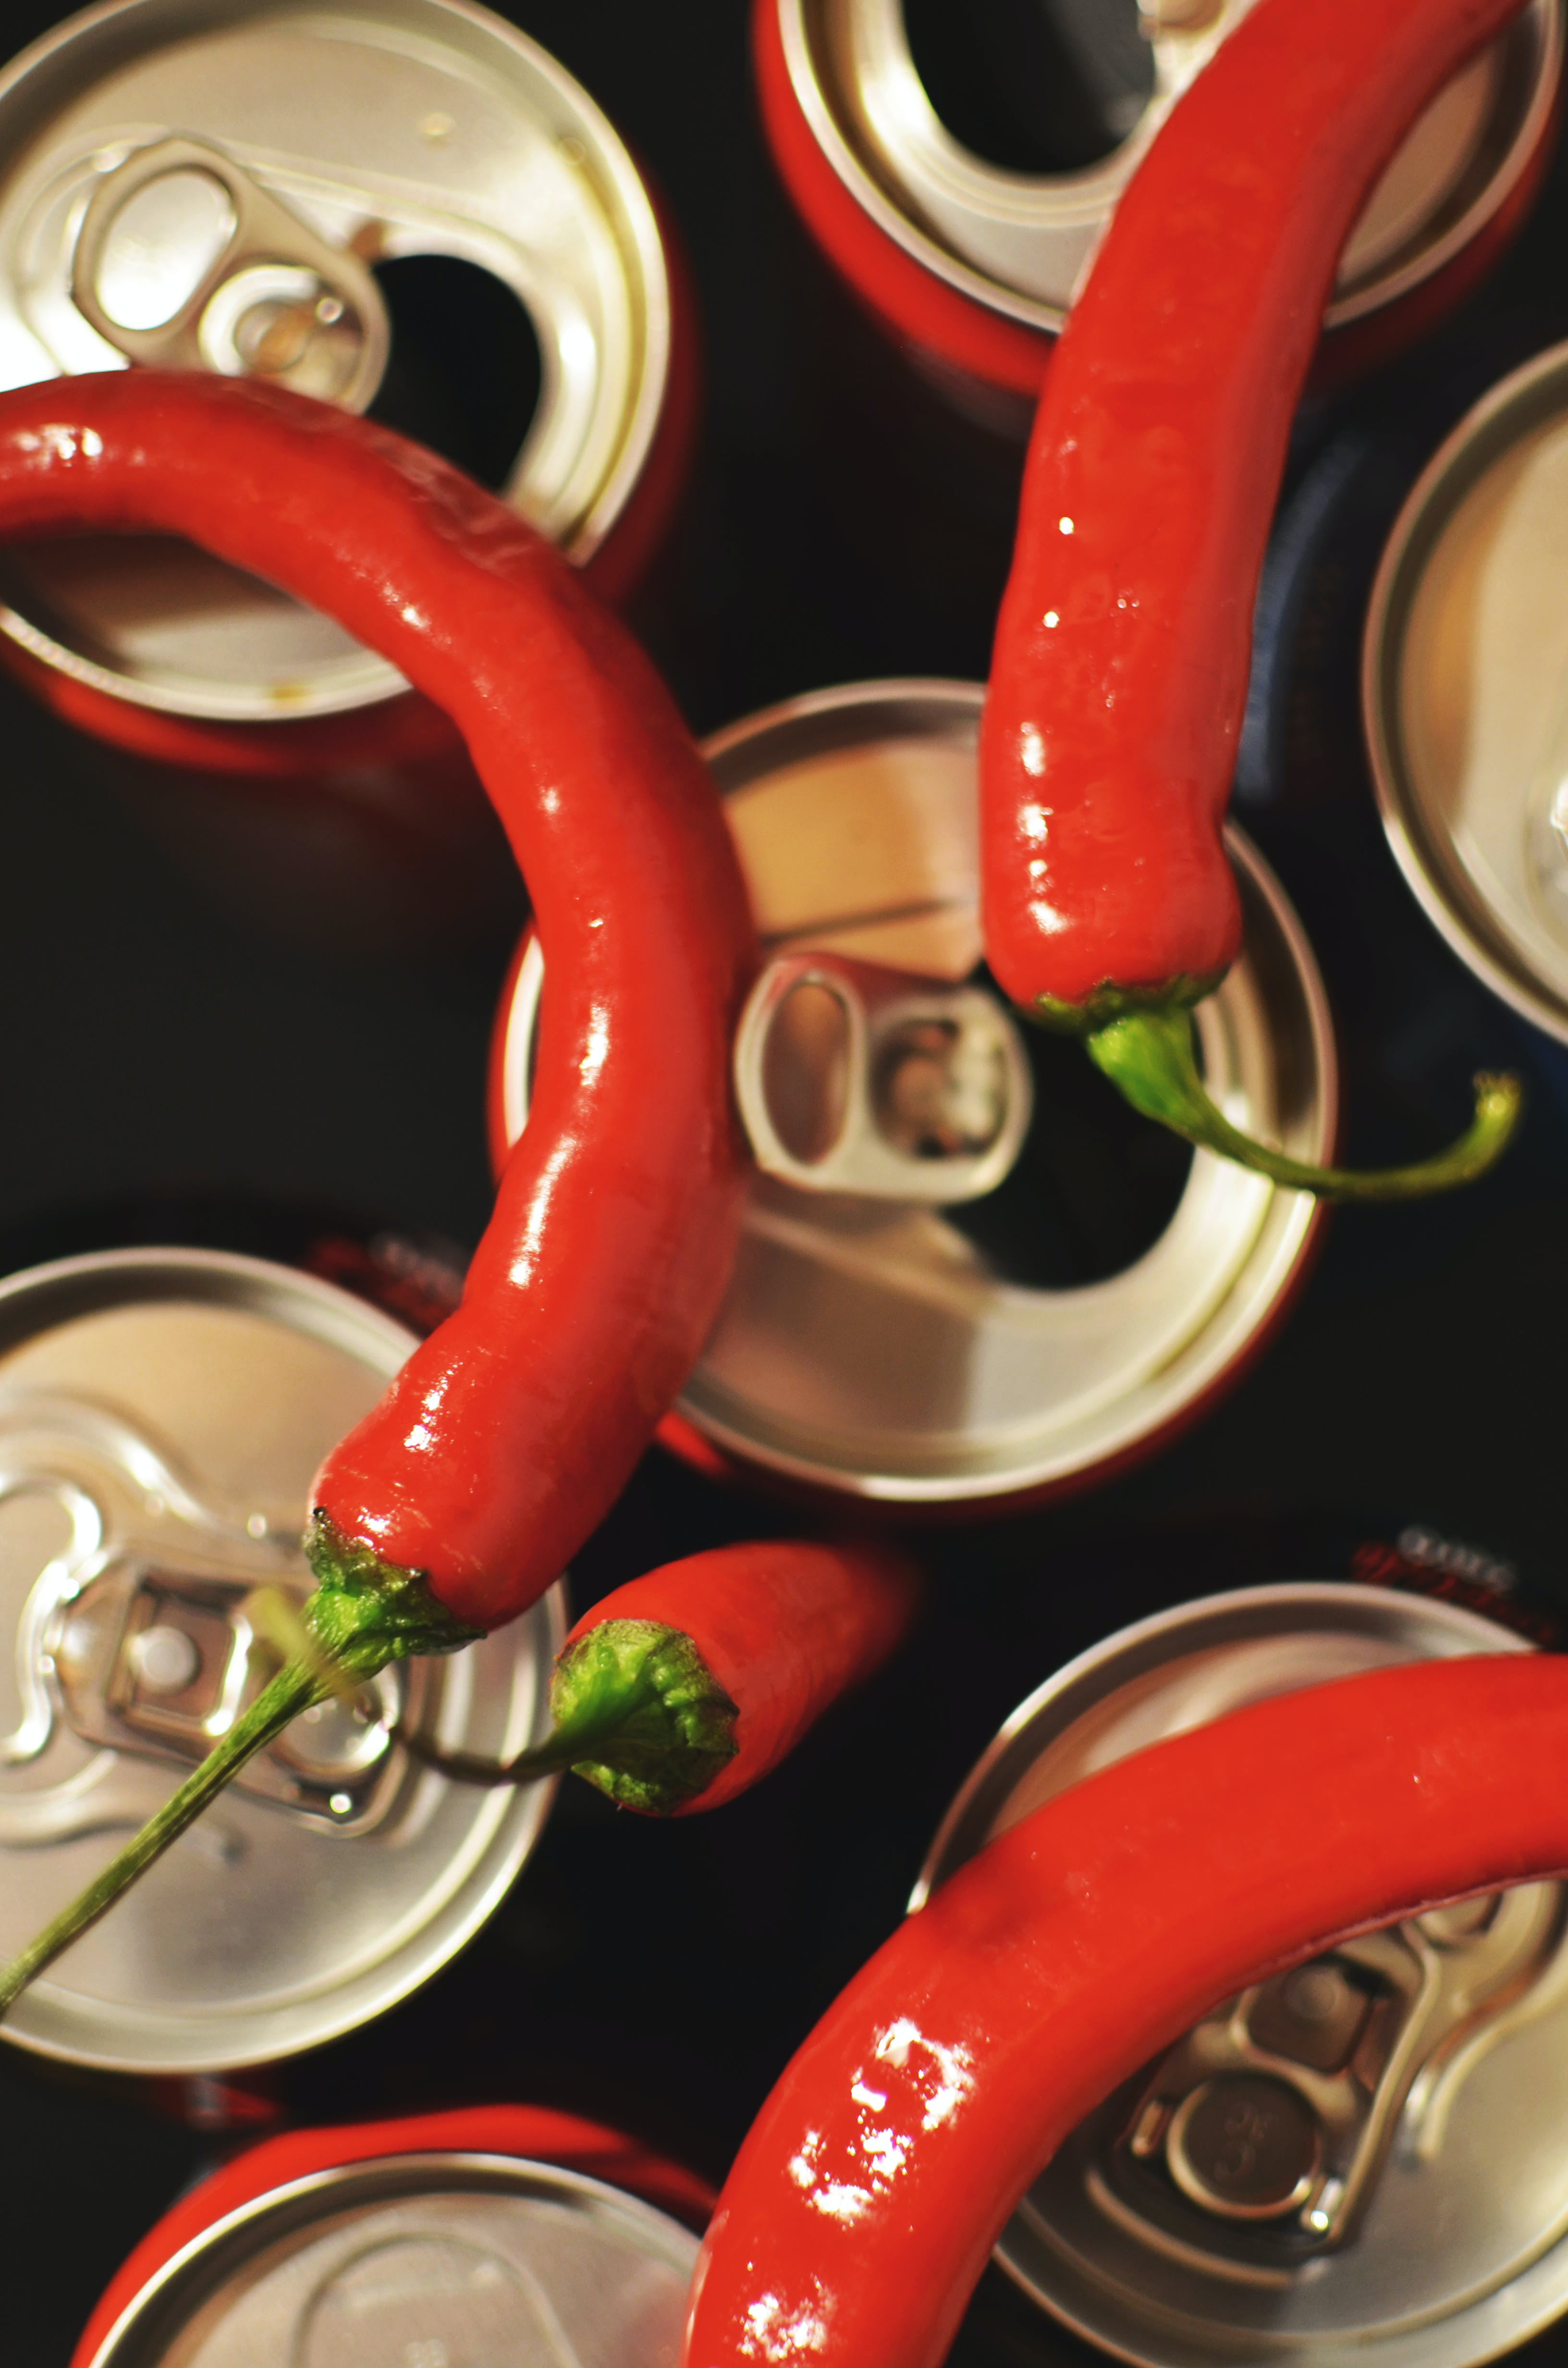 cans, chili pepper, chillies